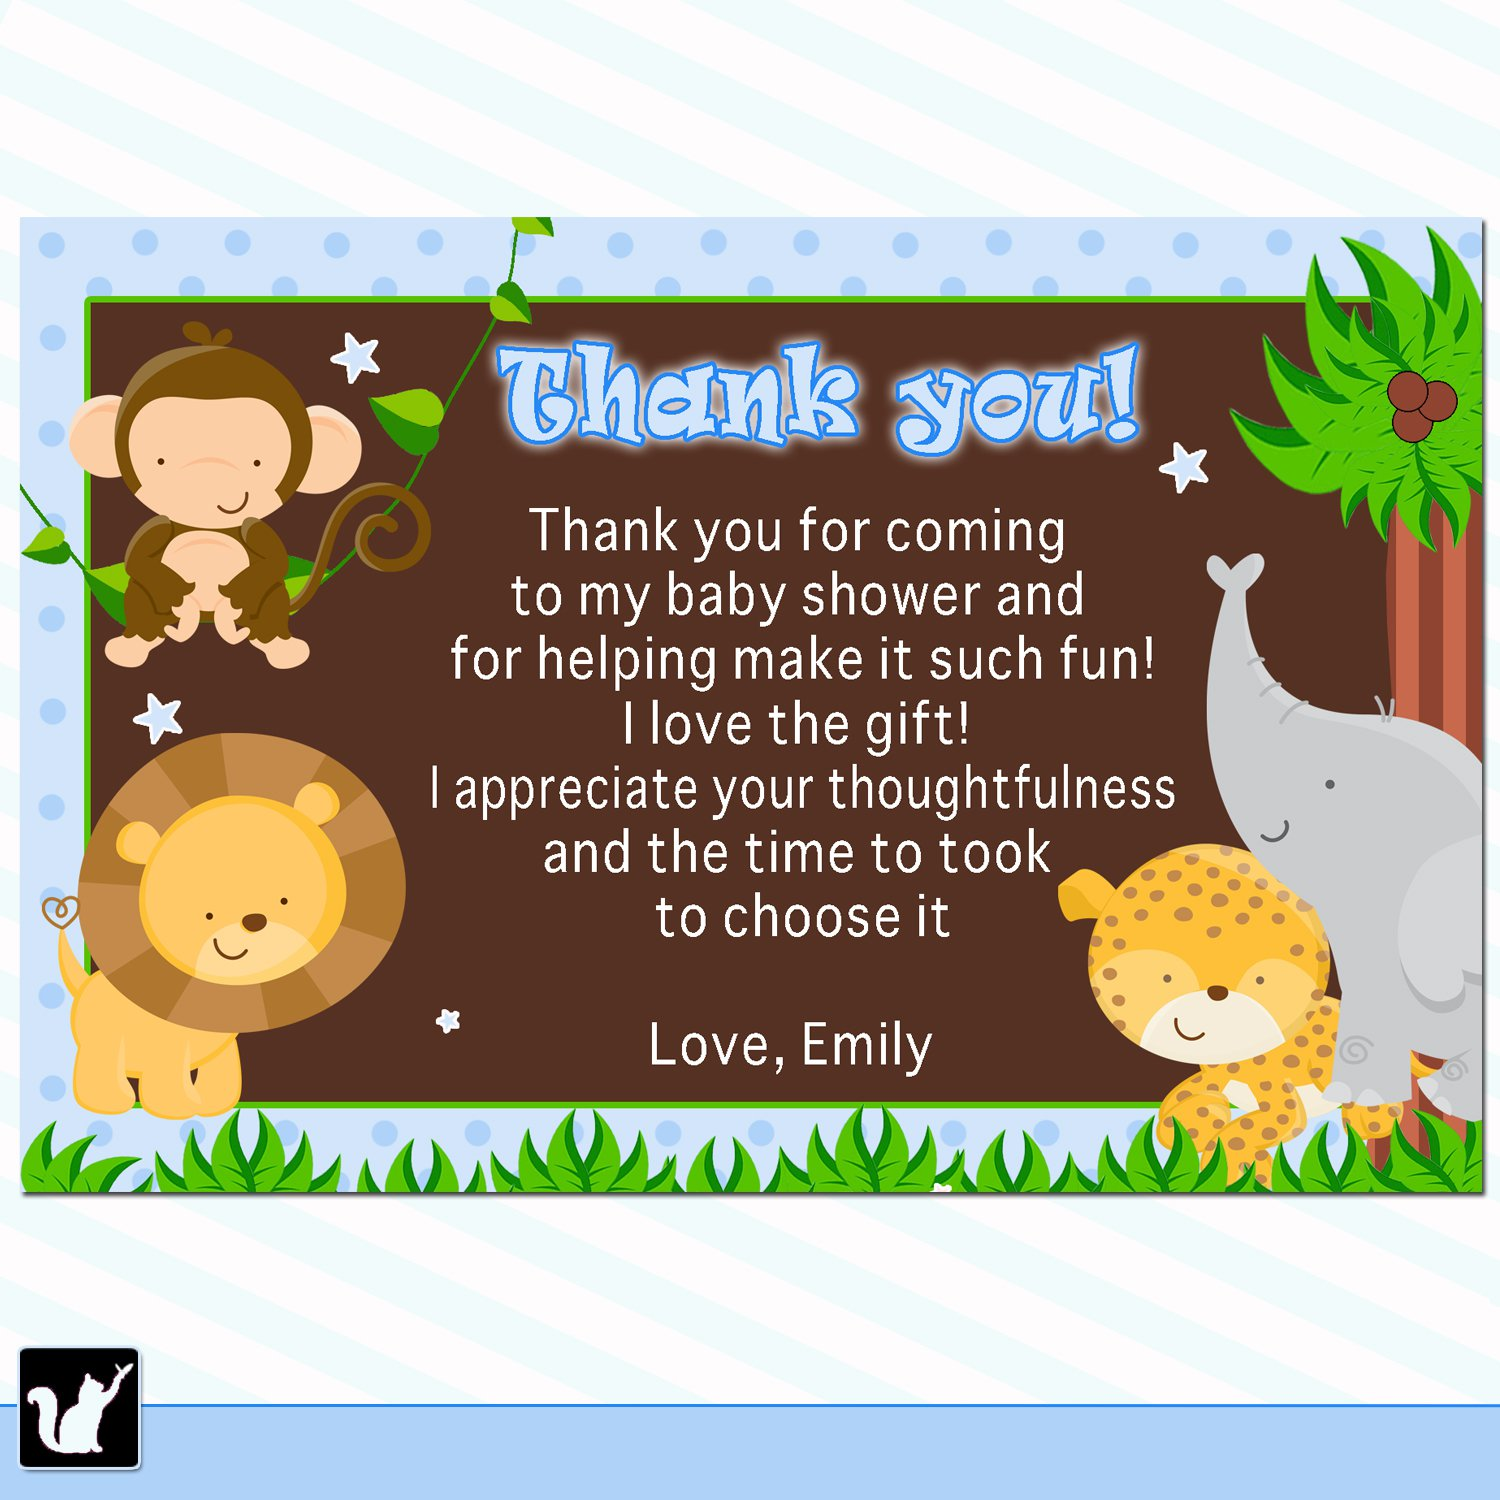 Sample Thank You Notes For Baby Shower Gifts: Printable Thank You Cards Jungle Safari Blue Polka Dots